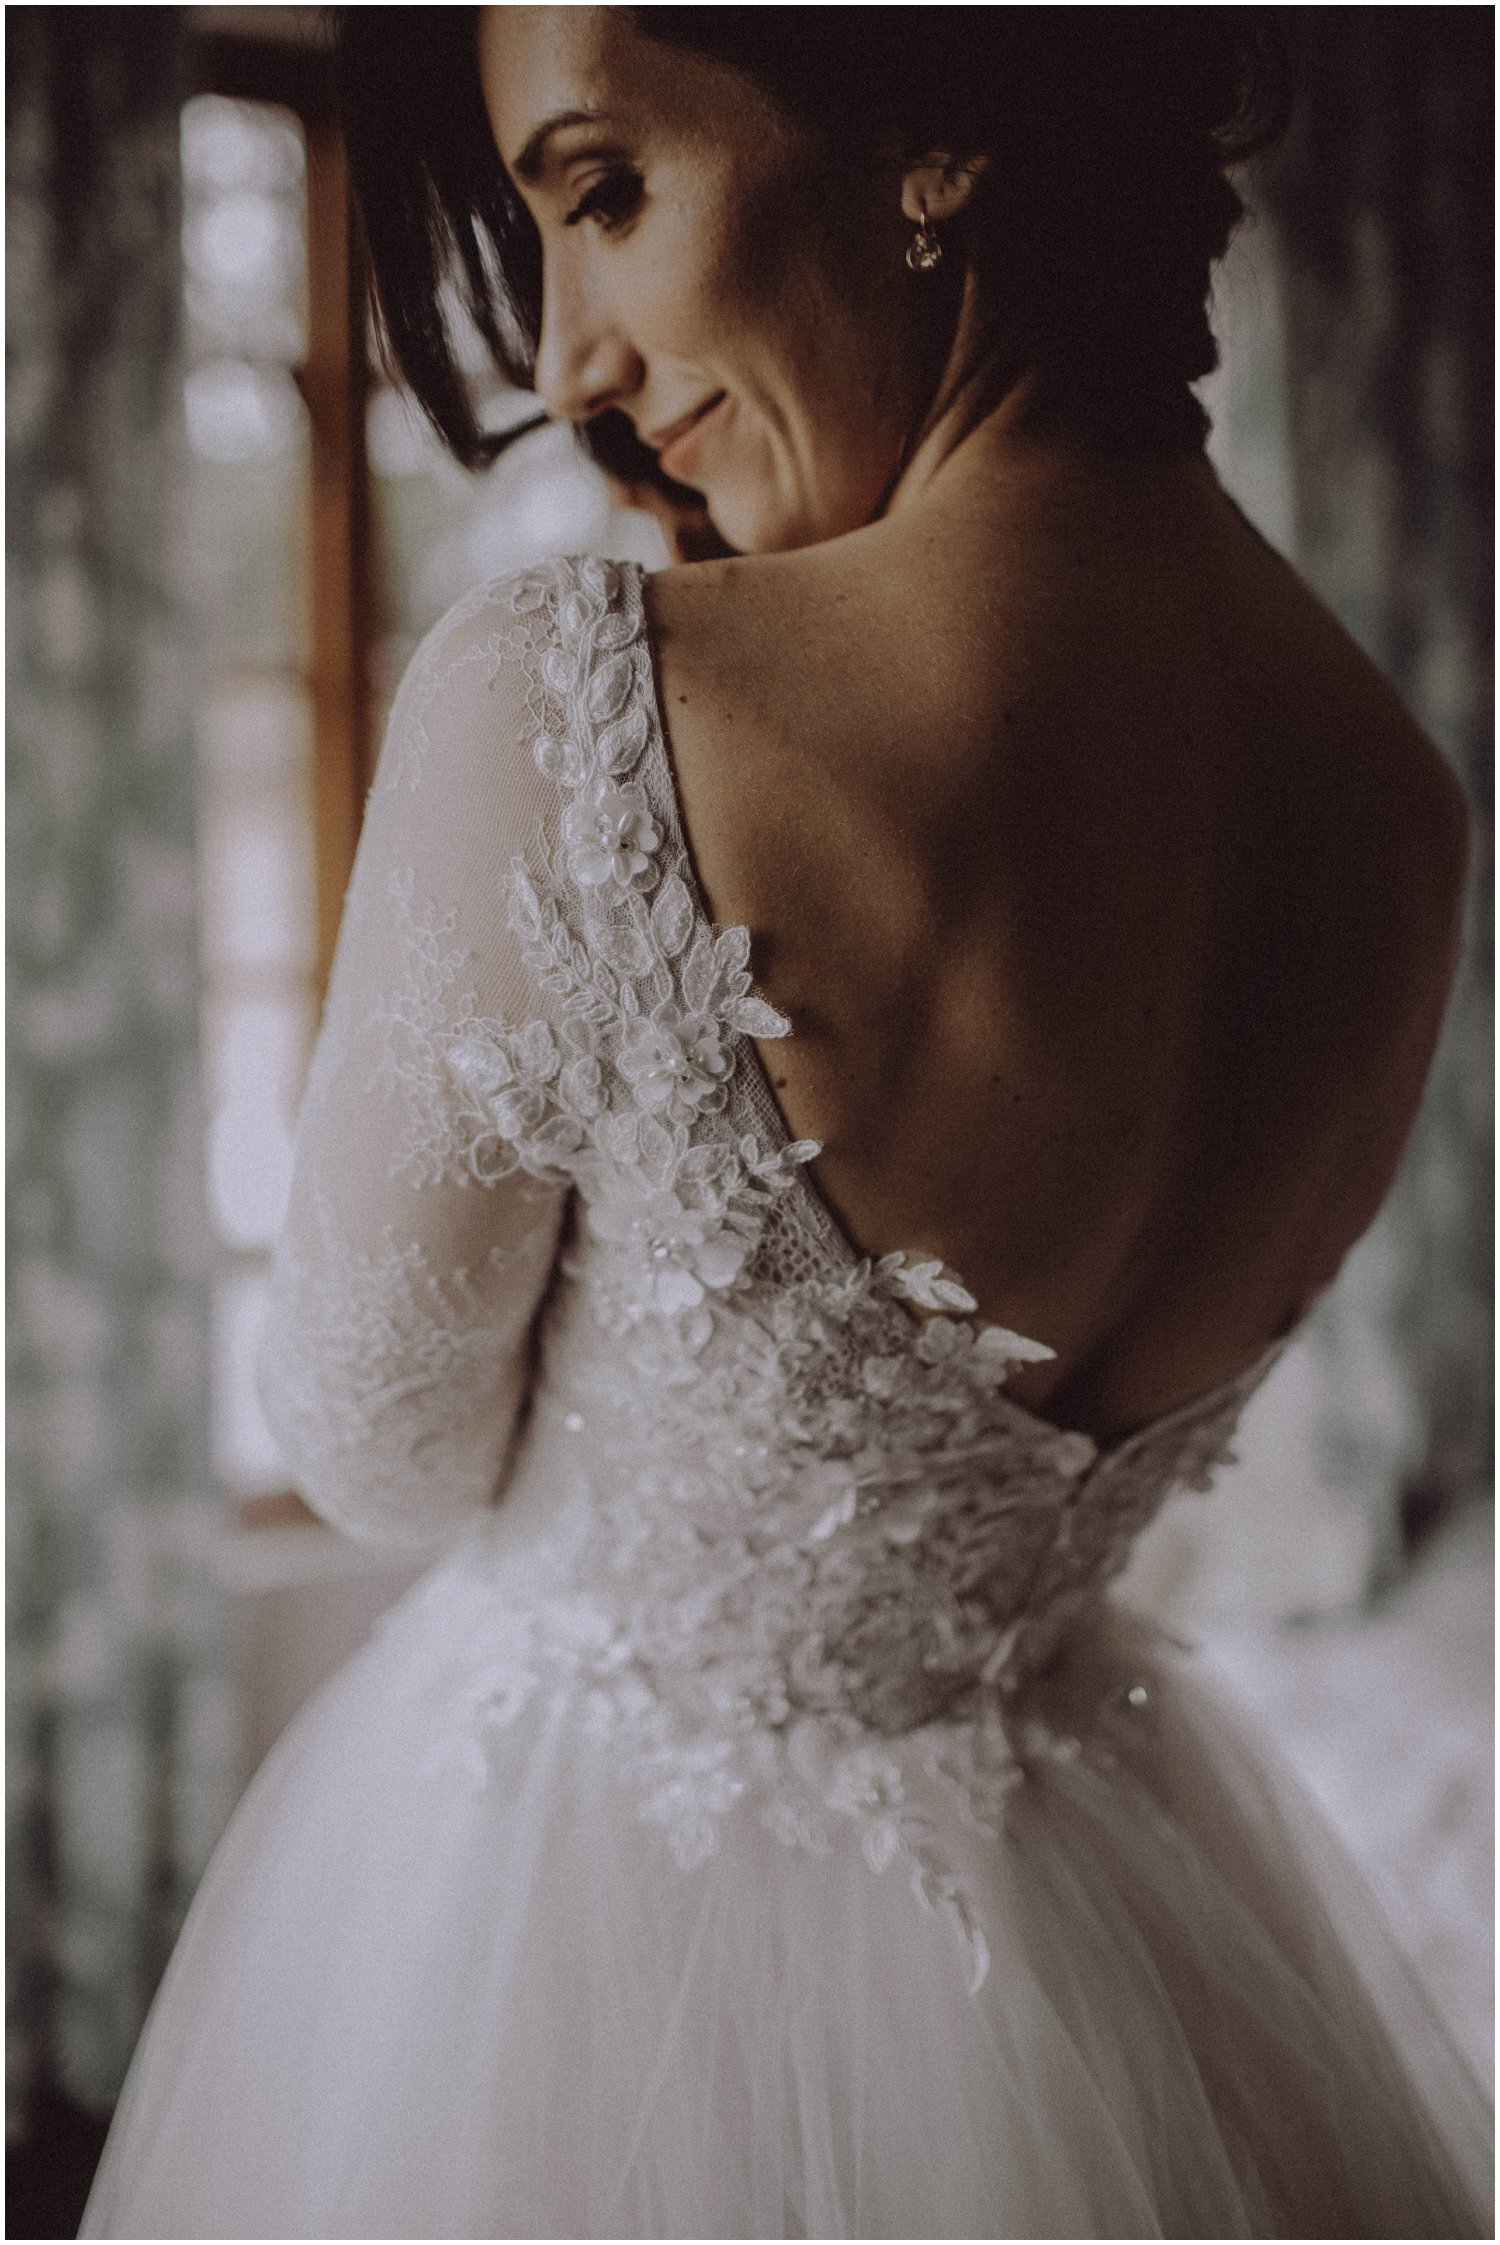 Top Wedding Photographer Cape Town South Africa Artistic Creative Documentary Wedding Photography Rue Kruger_1319.jpg